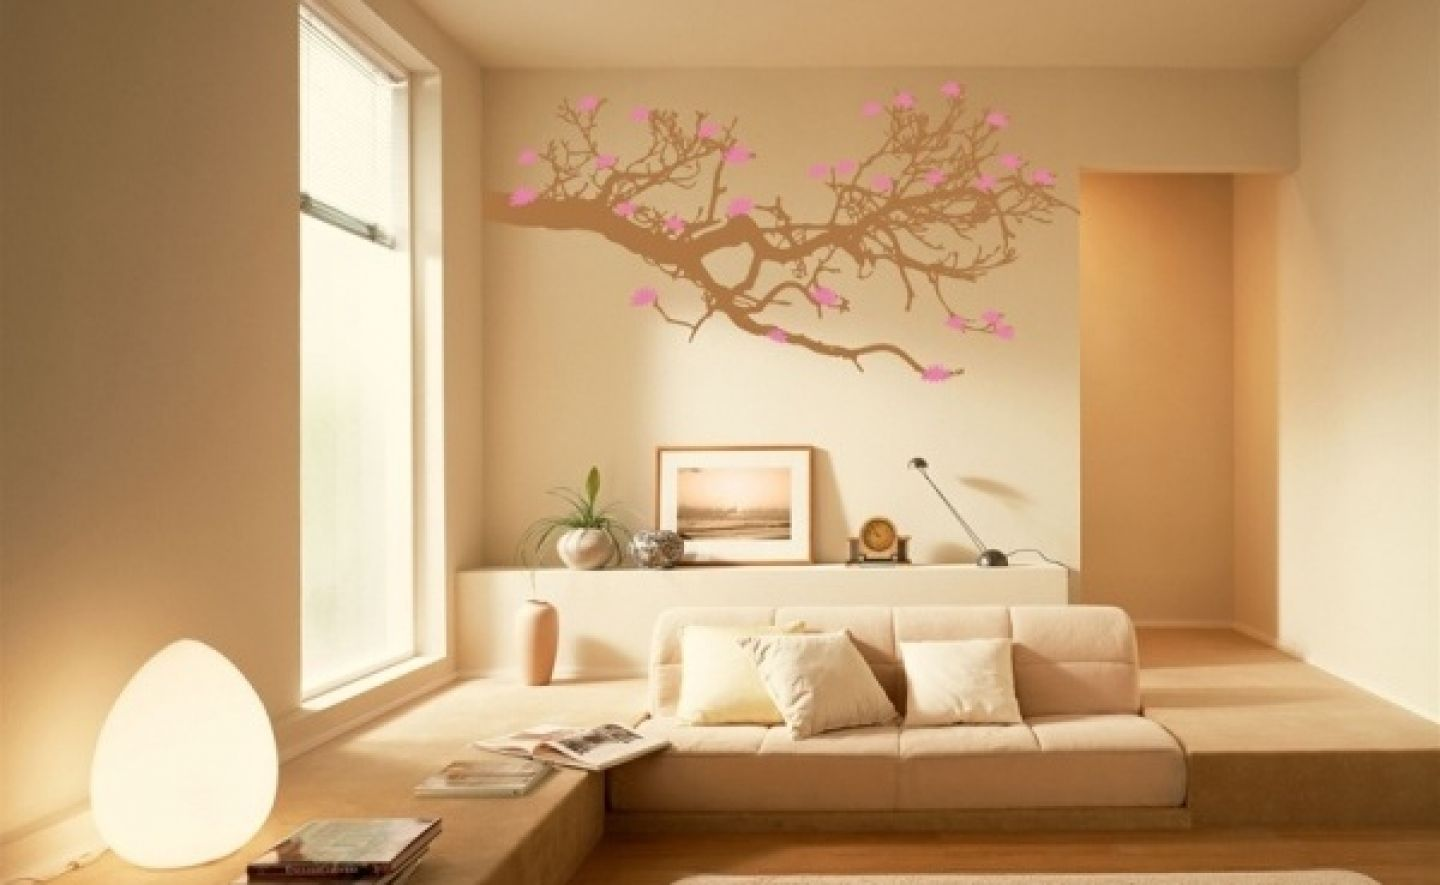 best images about wall painting idea on pinterest pink wall home